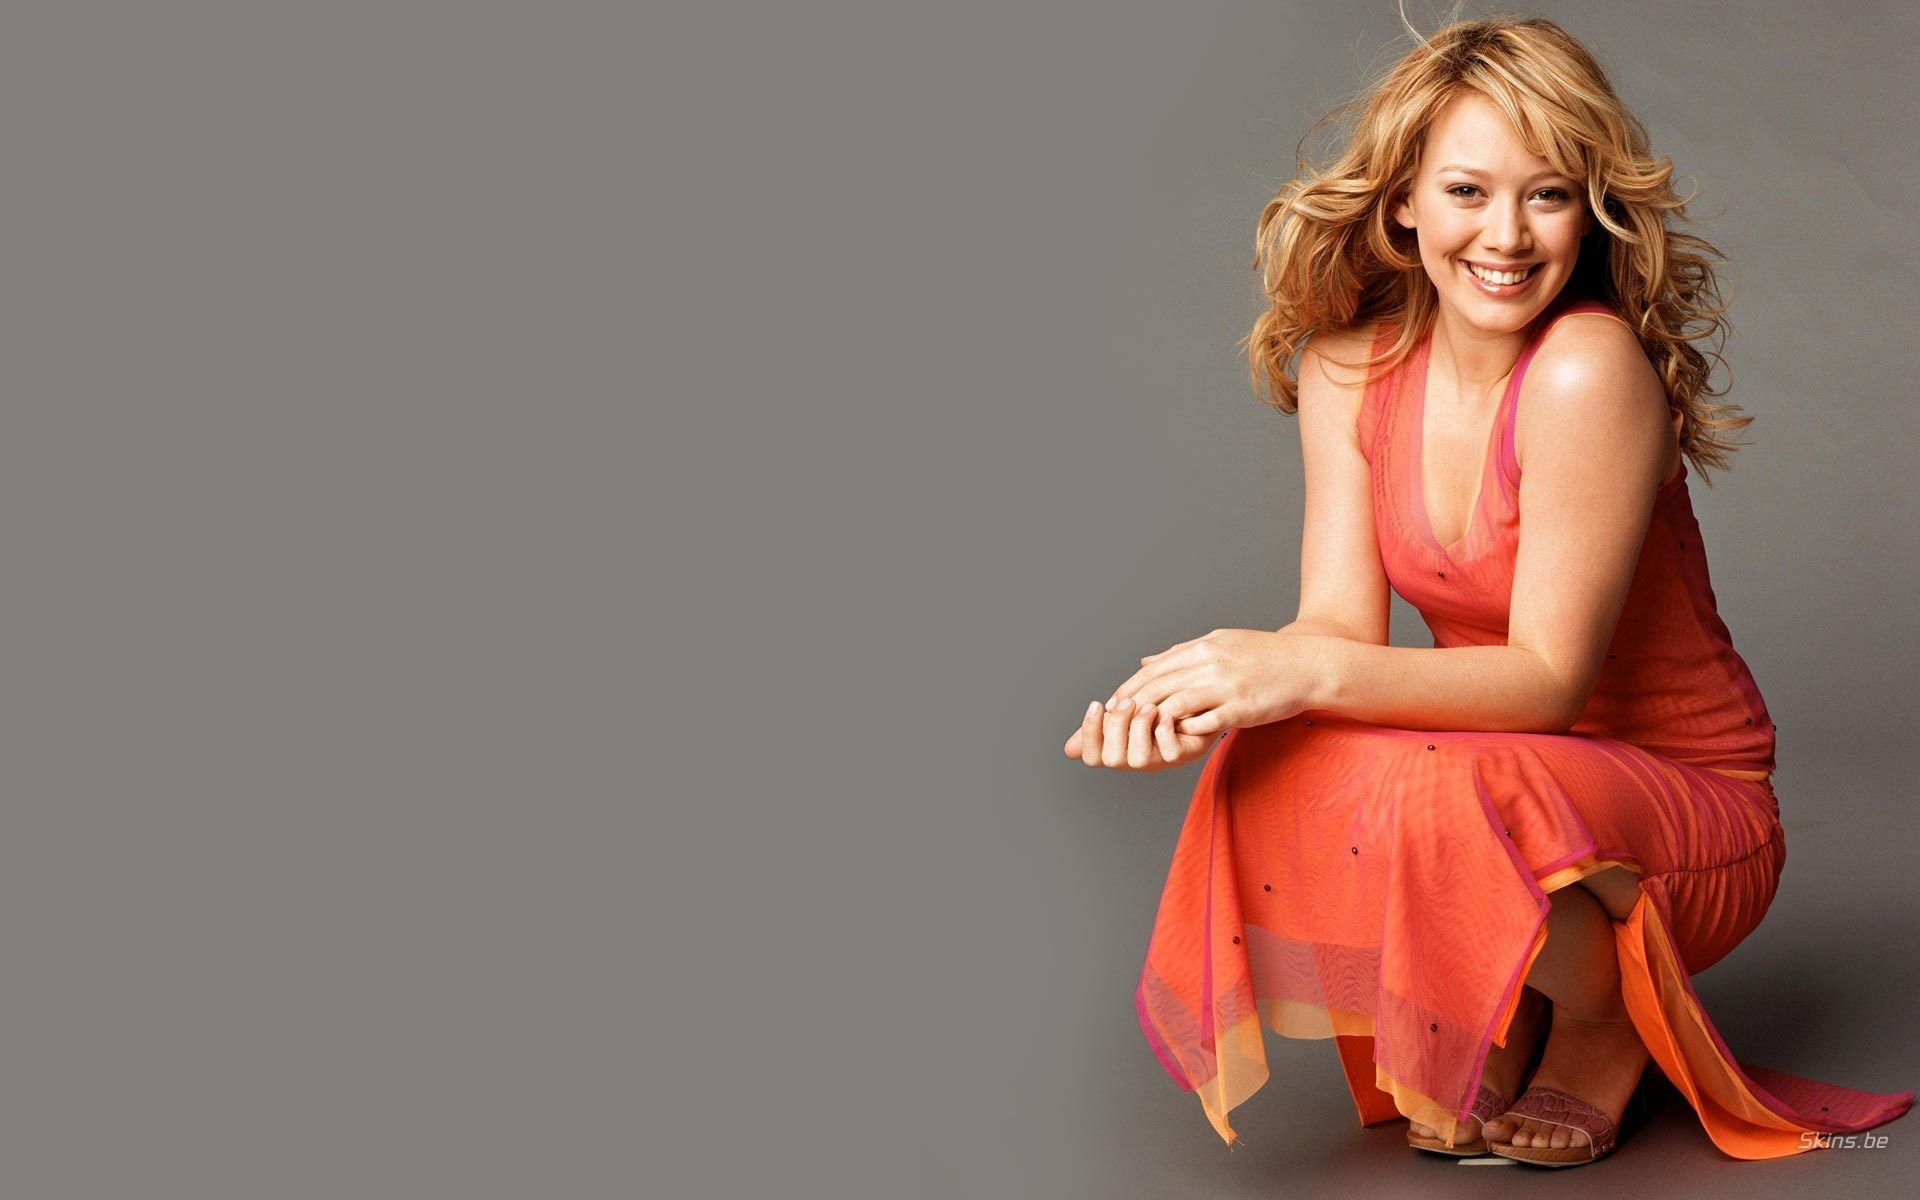 Awesome Hilary Duff 2017 Wallpapers, 14426